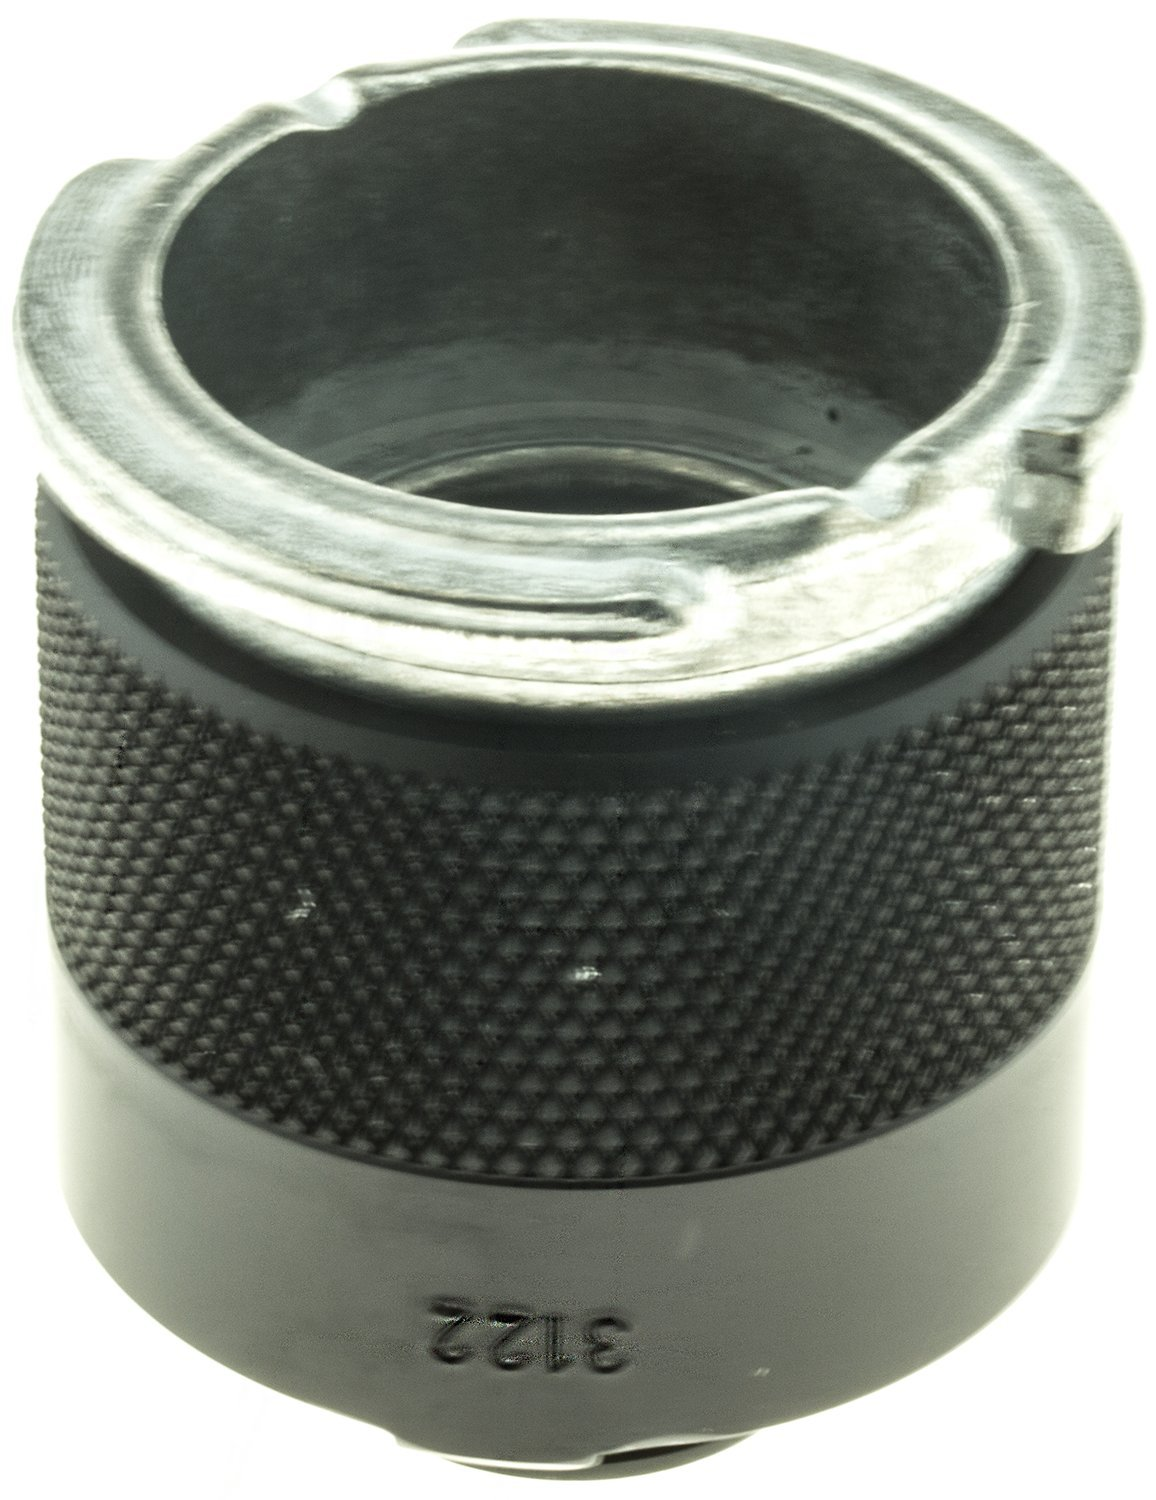 Motorad 3122 Radiator Cap Adapter